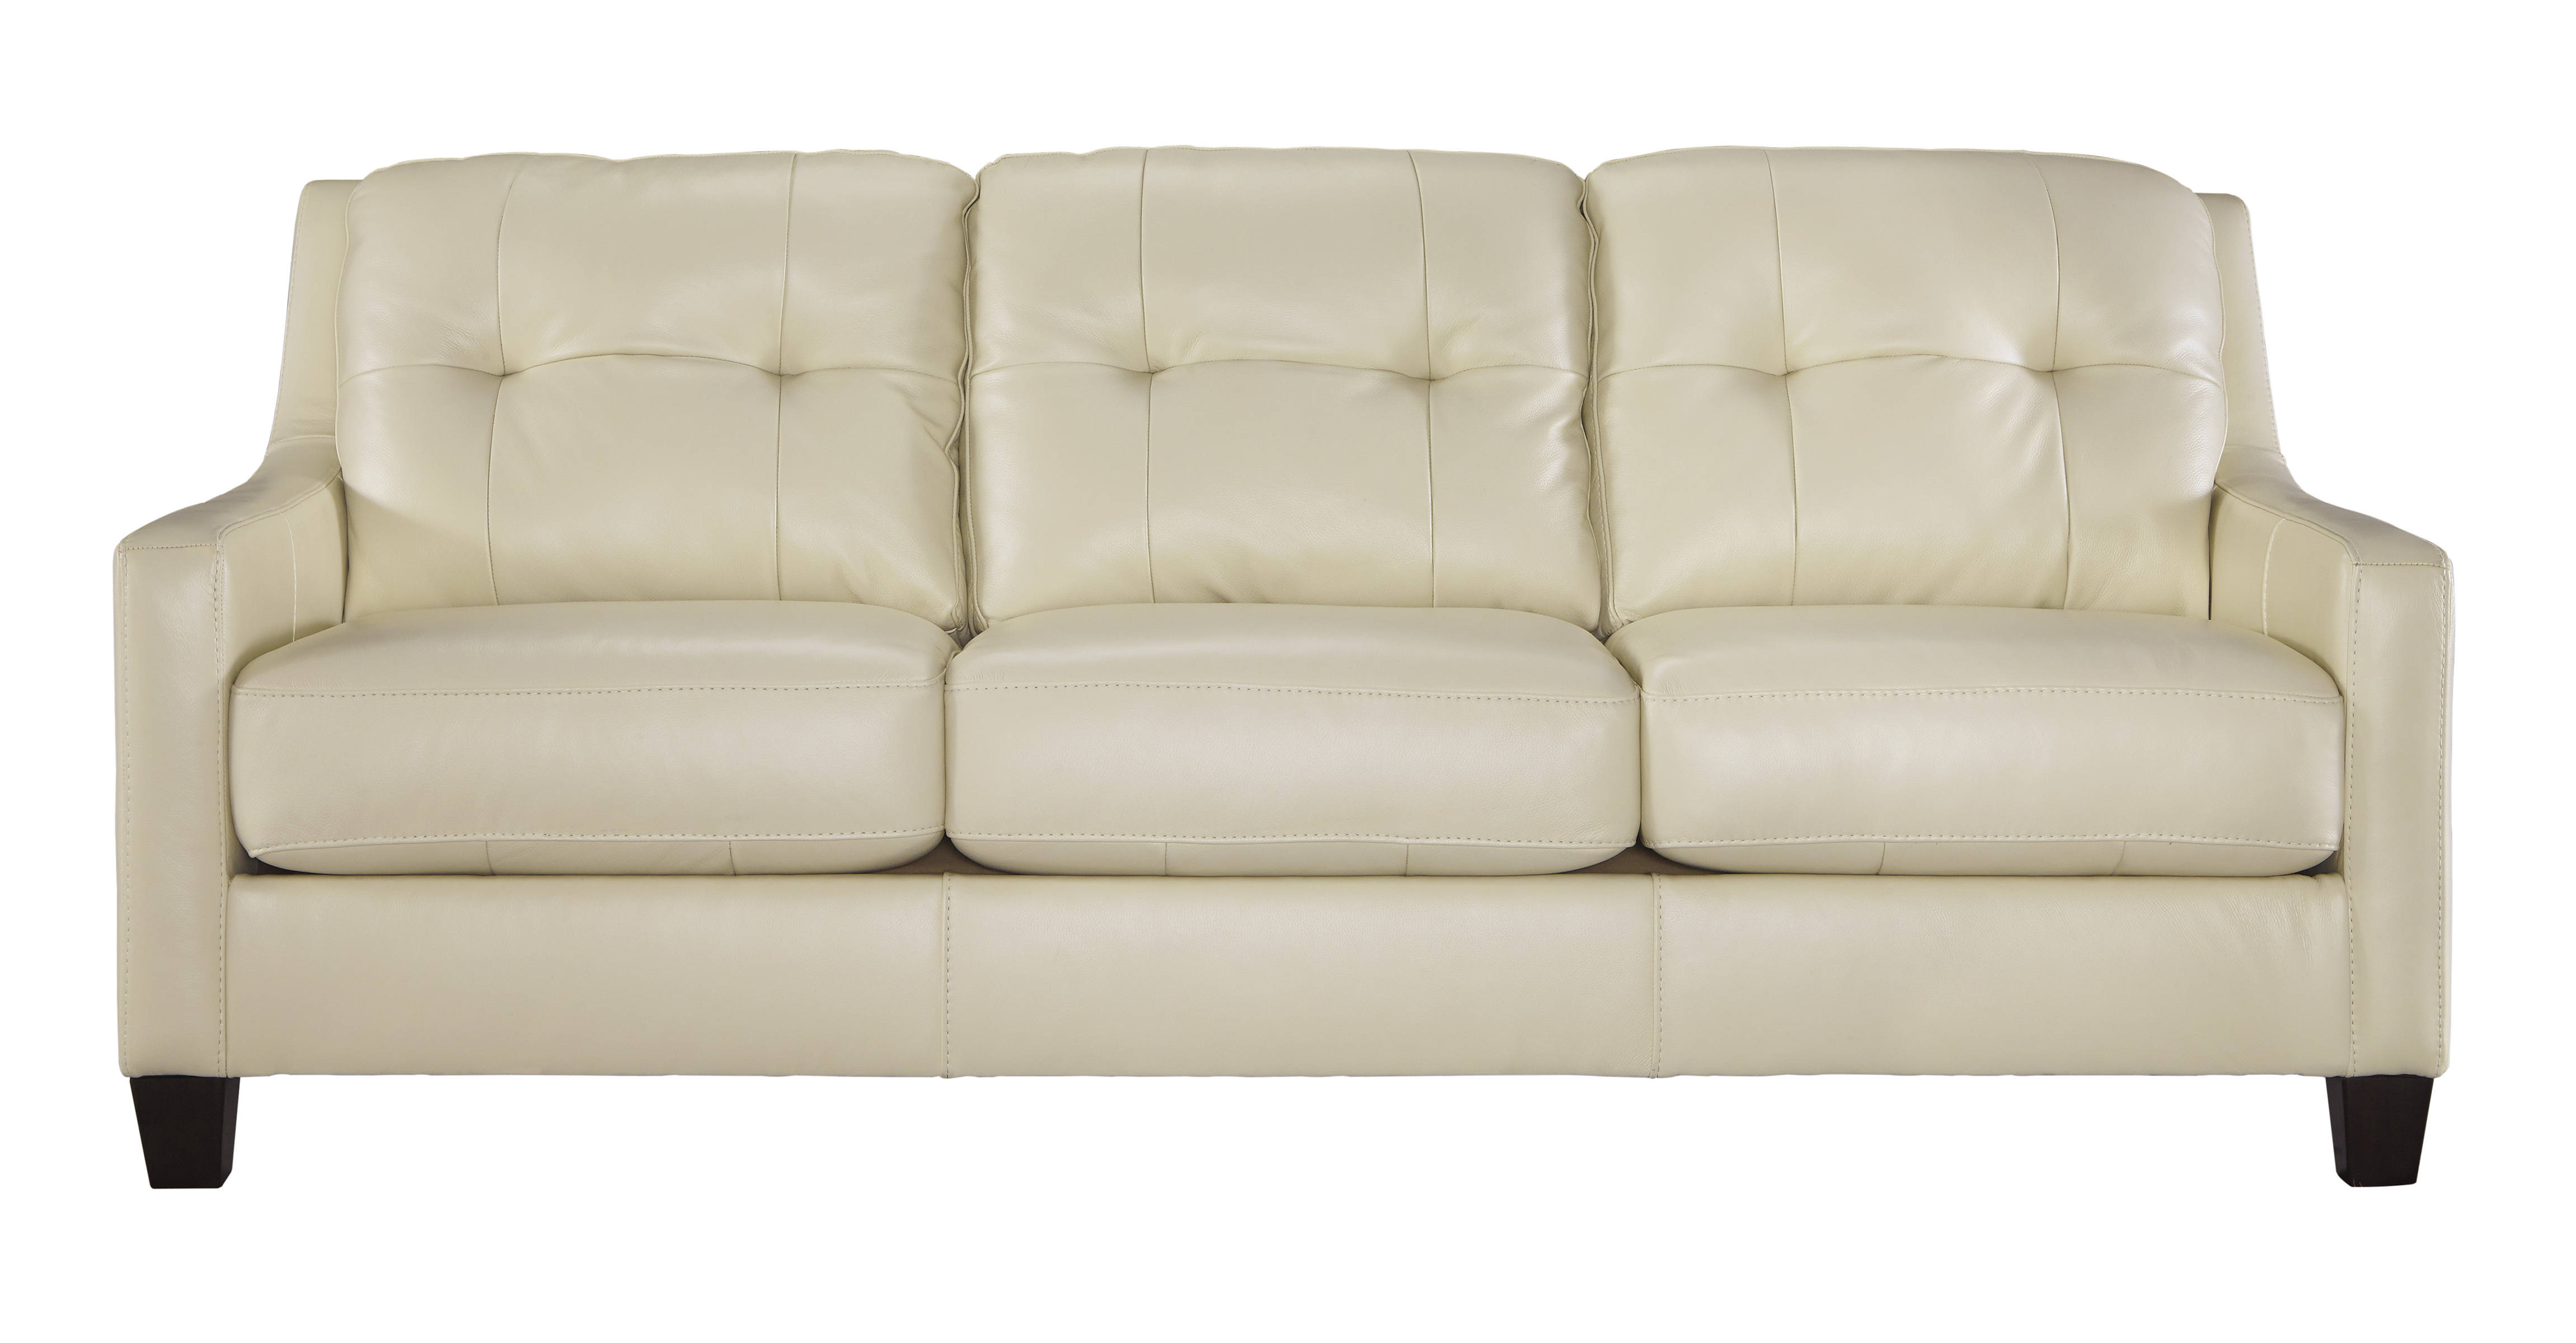 Ashley Furniture Okean Galaxy Sofa The Classy Home